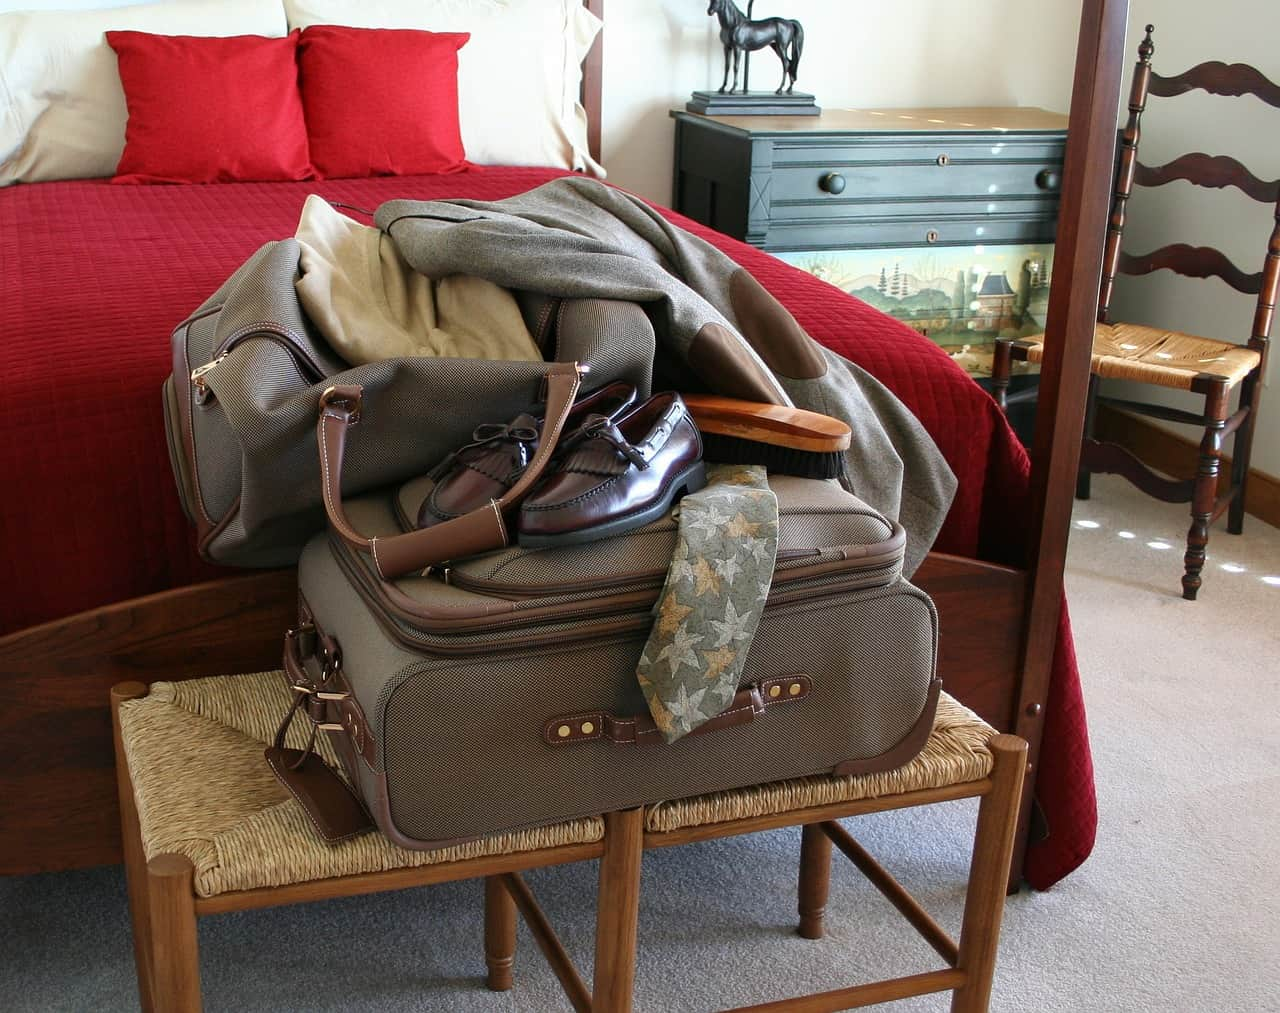 How to pack our bags